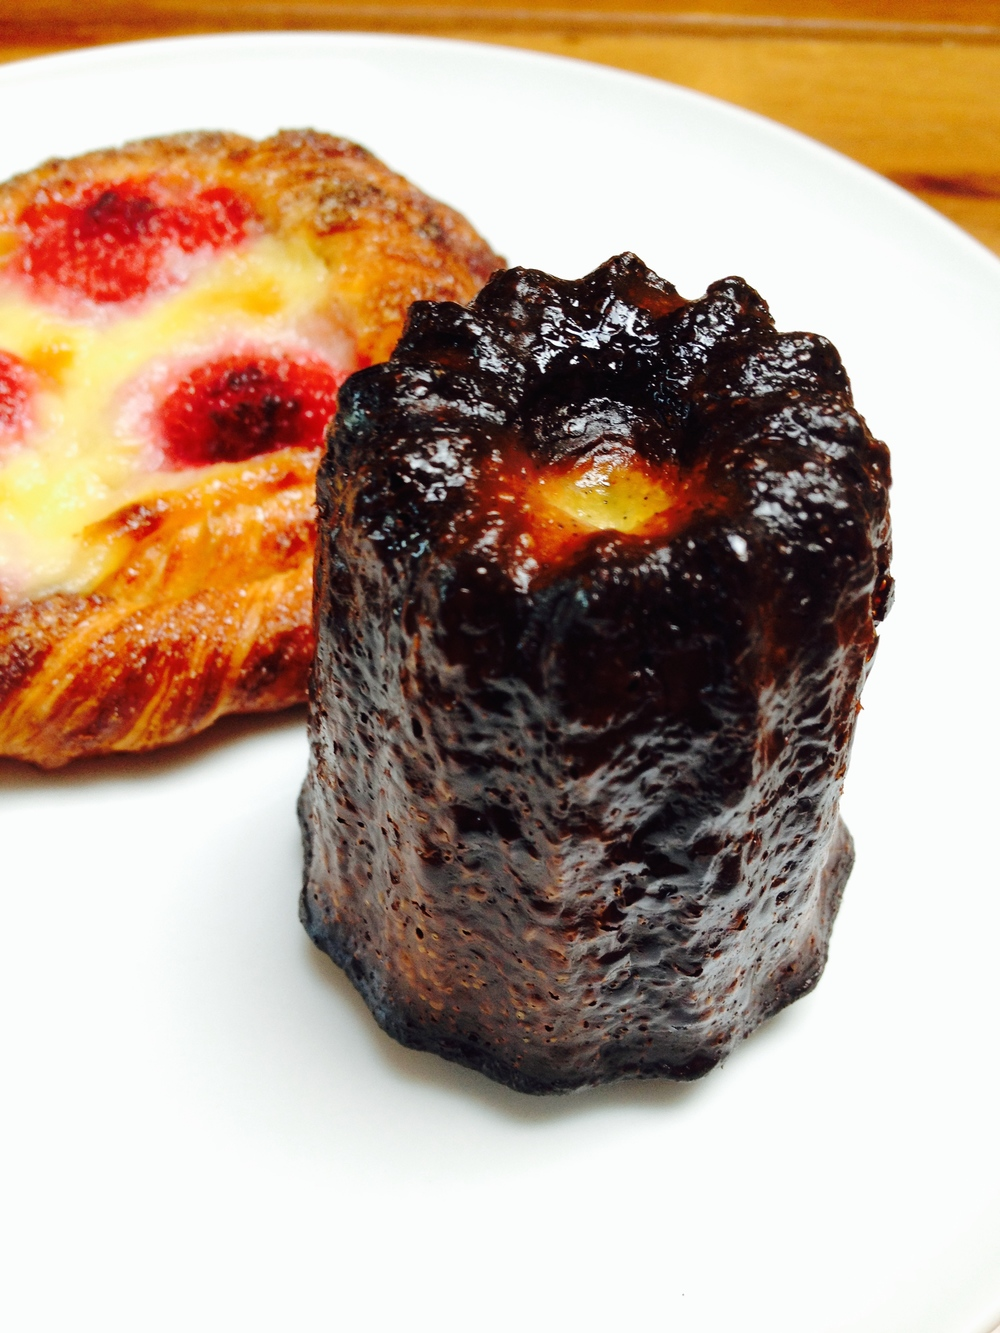 The most amazing canelé, plus a Cinnamon Twirl with raspberries.